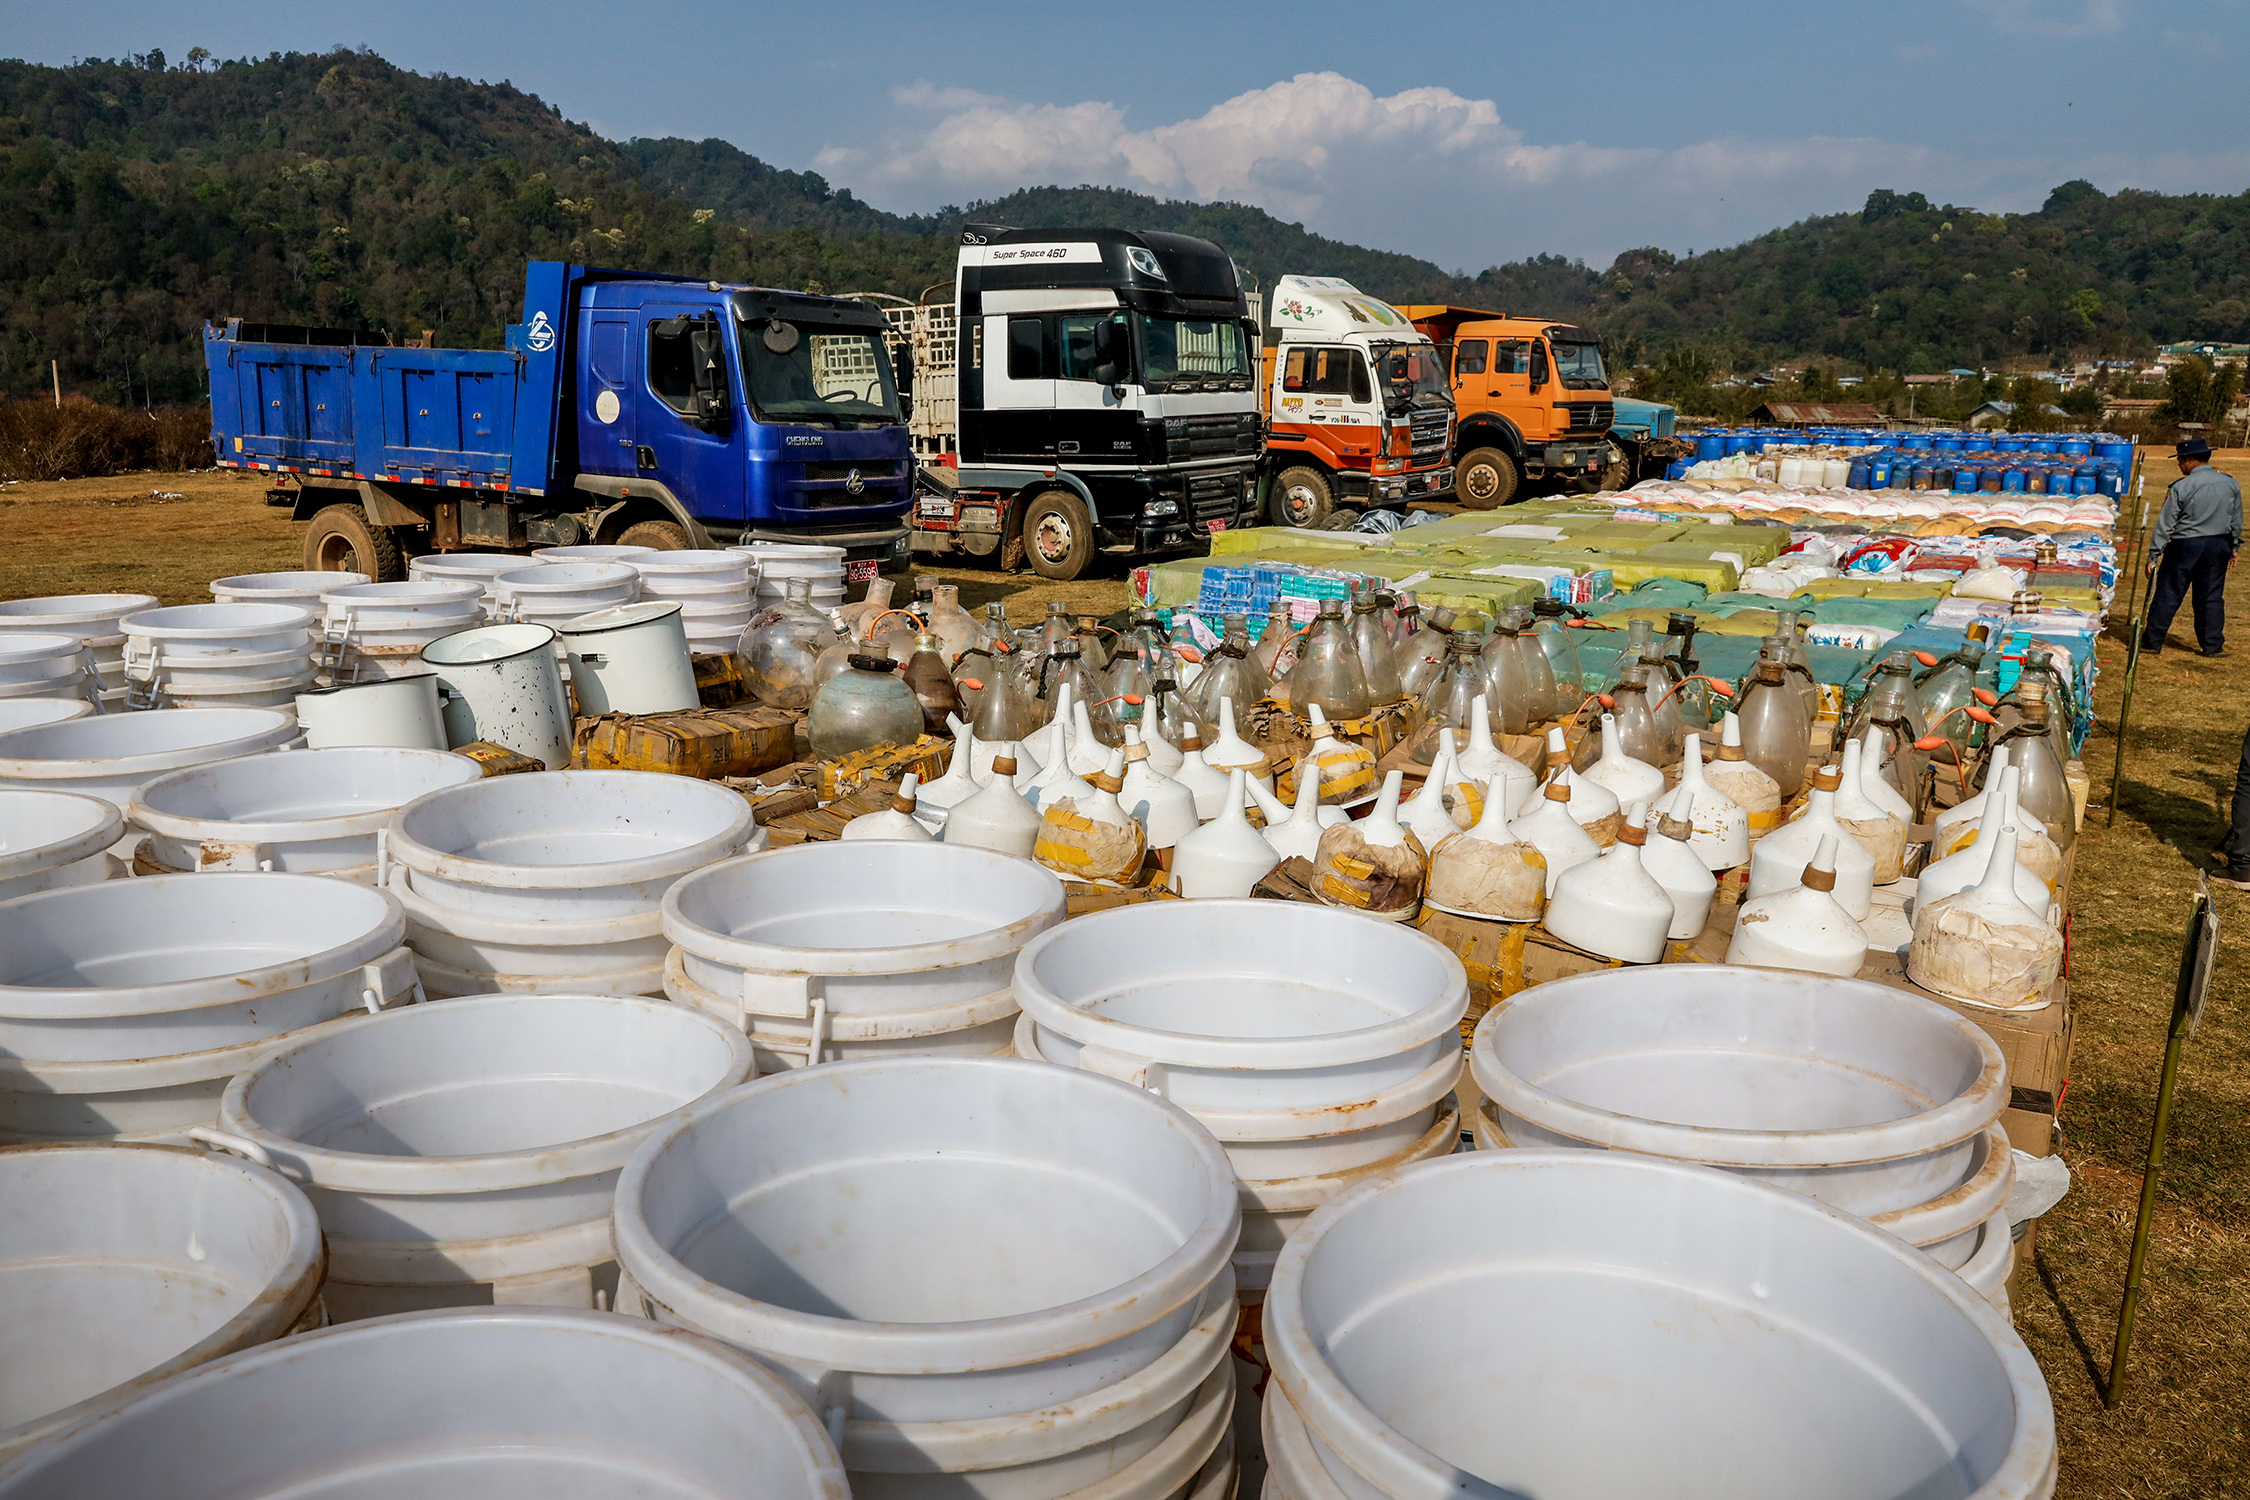 Drugs including crystal methamphetamine, yaba and heroin seized in raids in the Kawng Hkar area of northern Shan State are put on display together with vehicles, laboratory equipment and precursor chemicals at a government-organised event in Loi Kham village on March 6, 2020. (Hkun Lat | Frontier)